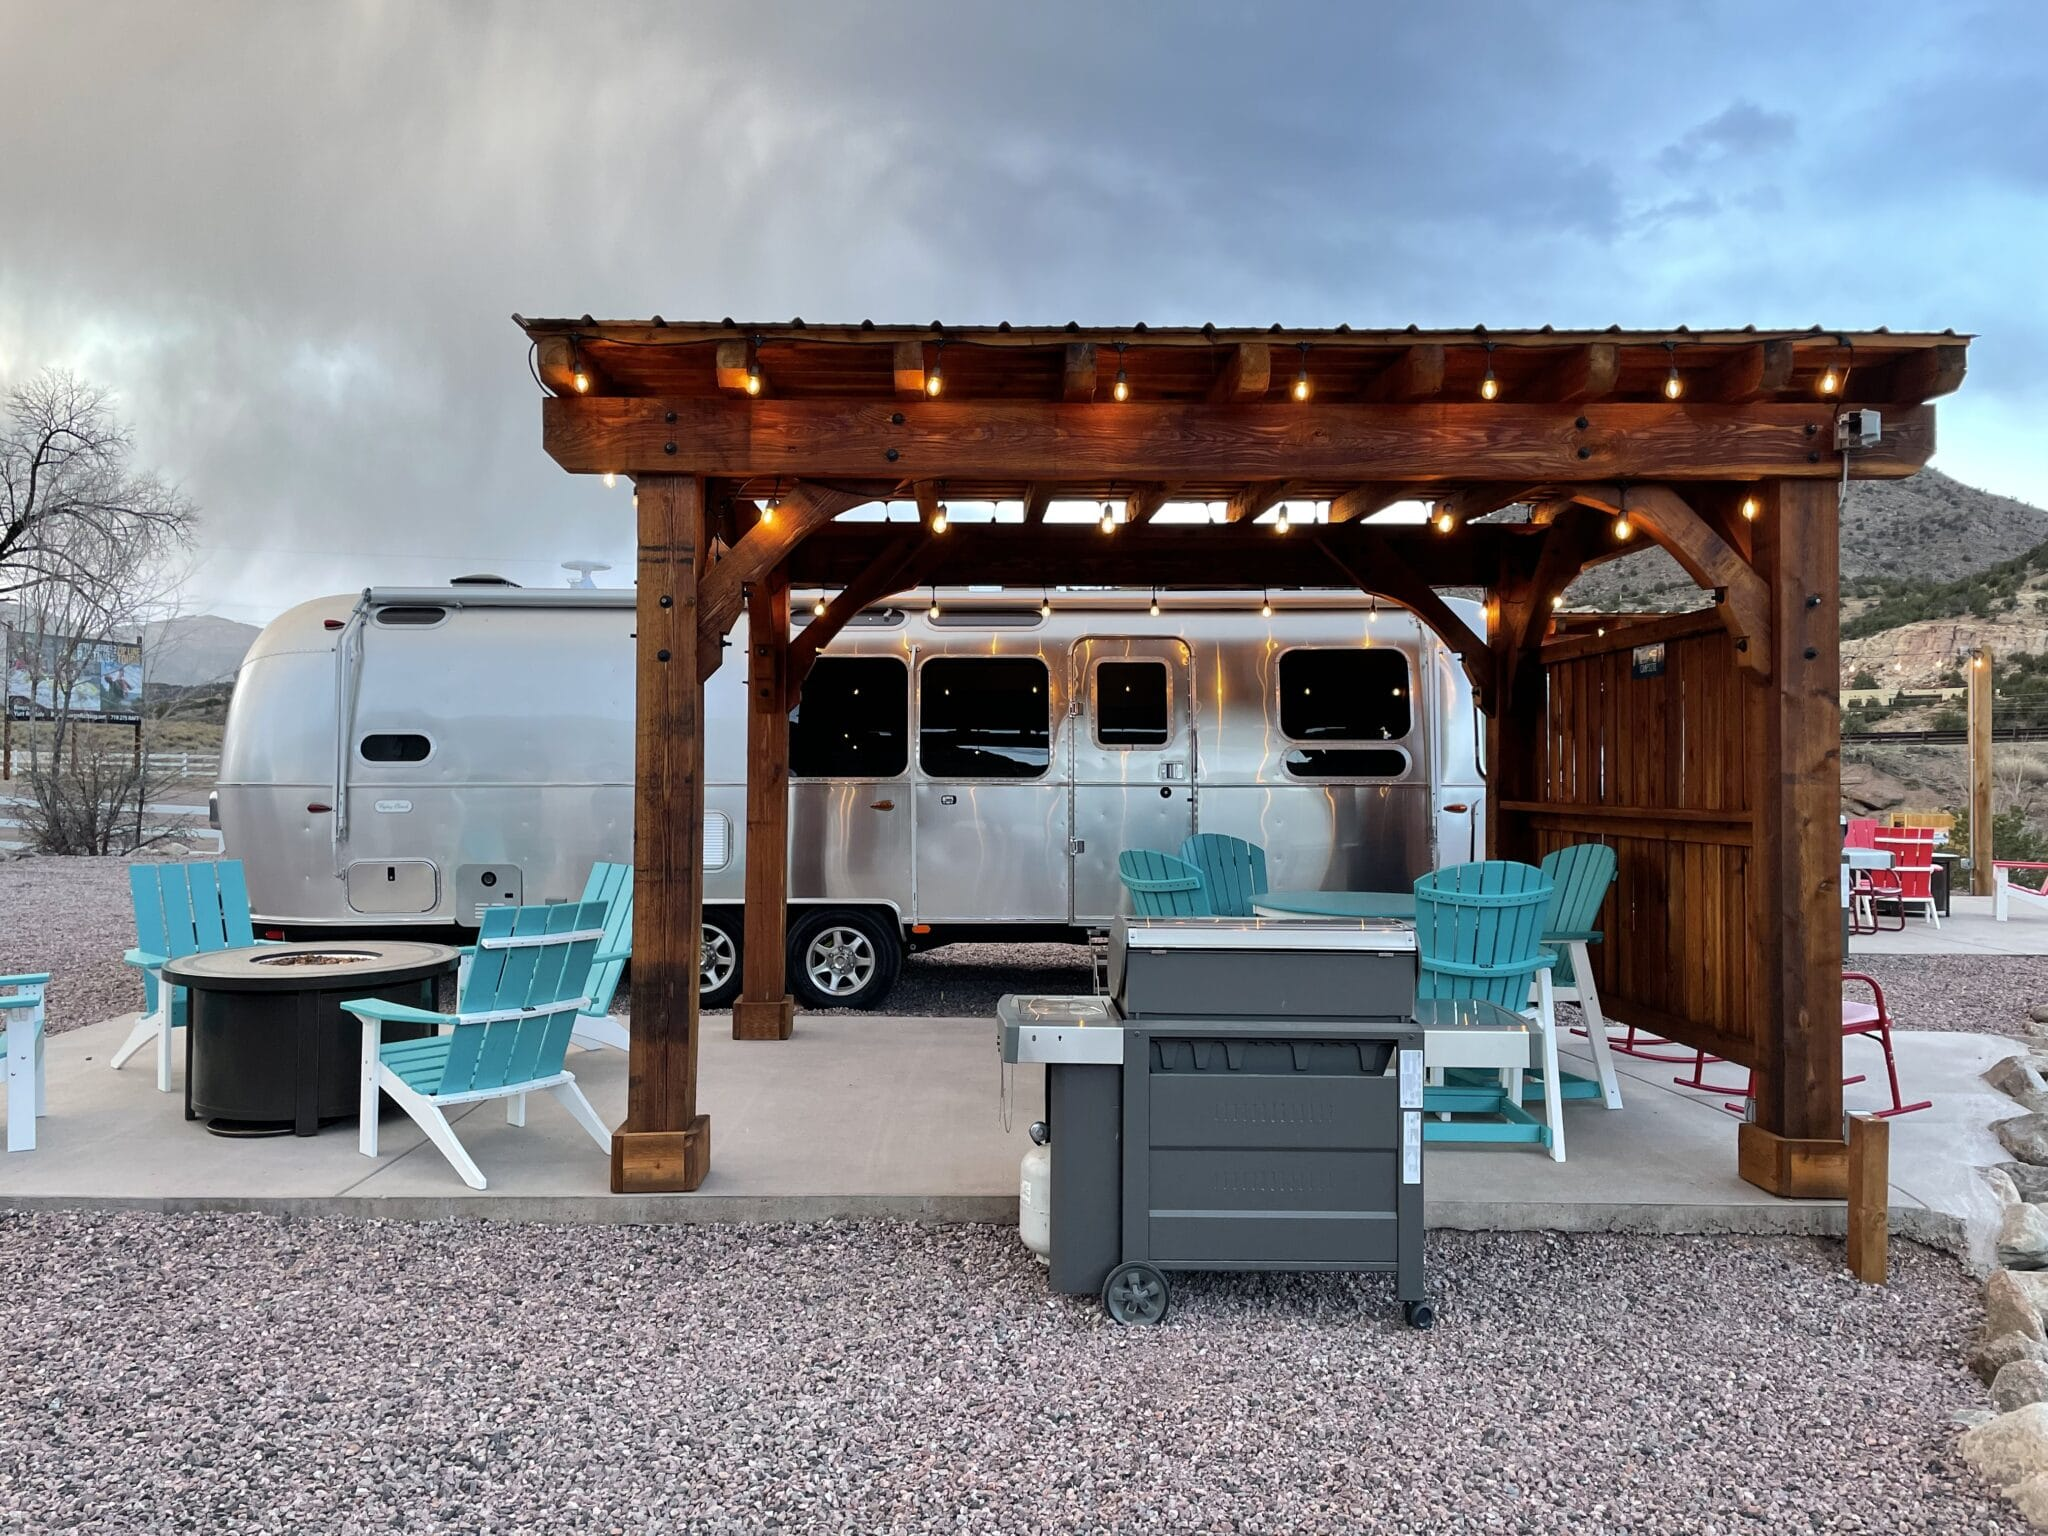 image of airstream glamping in the royal gorge region